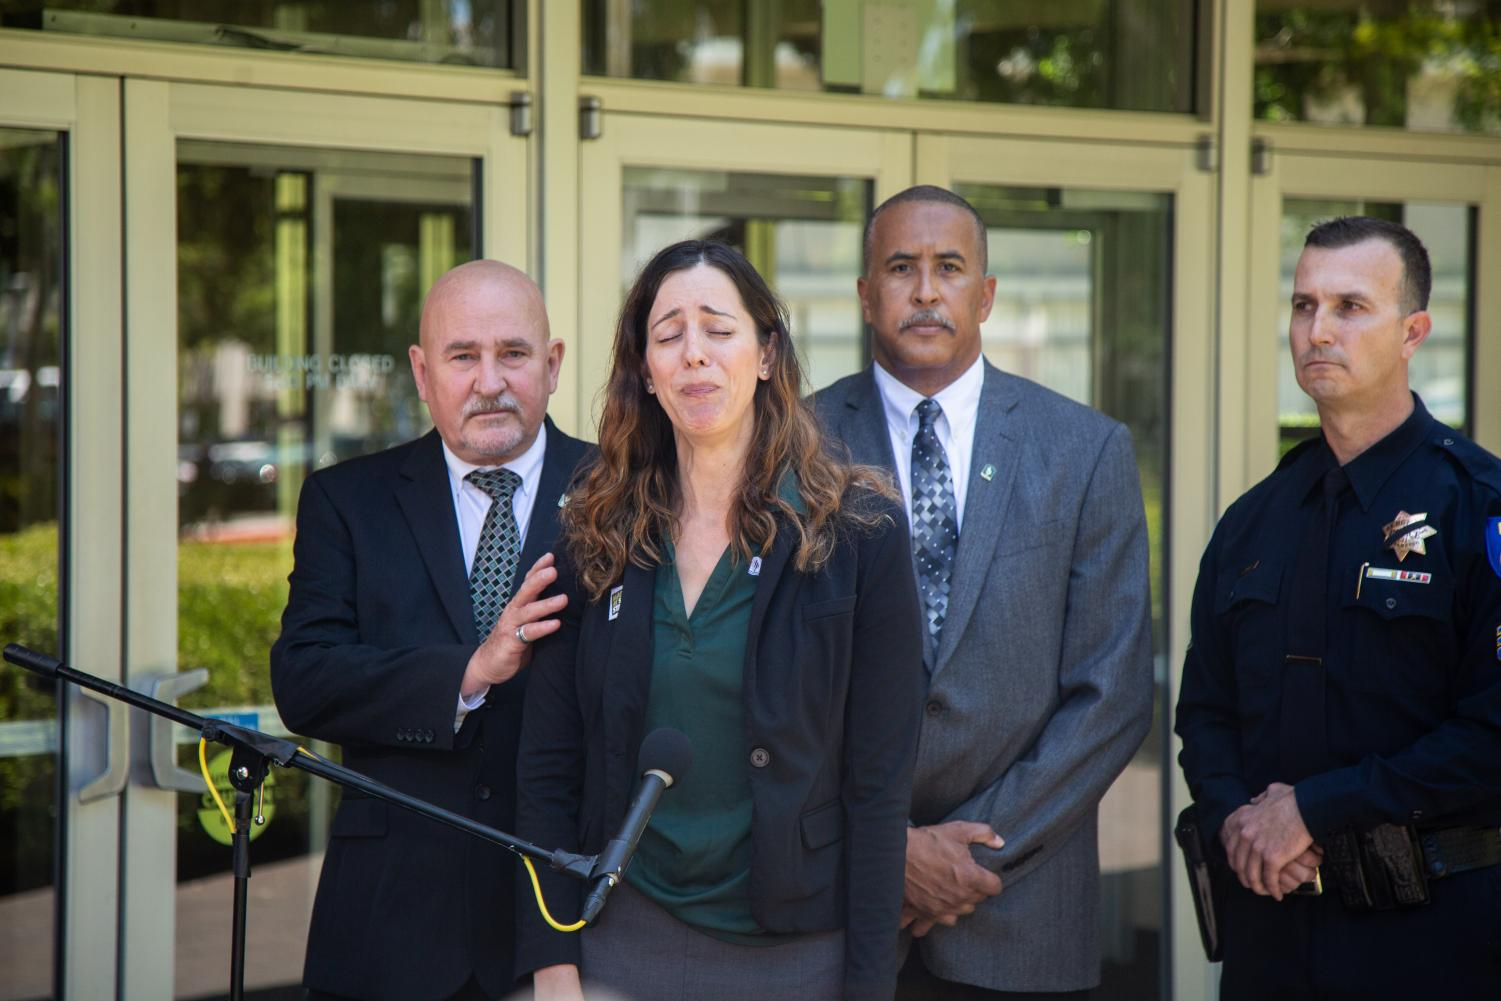 Sac State Career Center Director Melissa Repa talks about Tara O'Sullivan at a press conference in front of Sacramento Hall on Thursday, June 20, 2019. O'Sullivan was a Sacramento Police officer and Sac State alumna who was killed in the line of duty June 19 while responding to a domestic violence call.